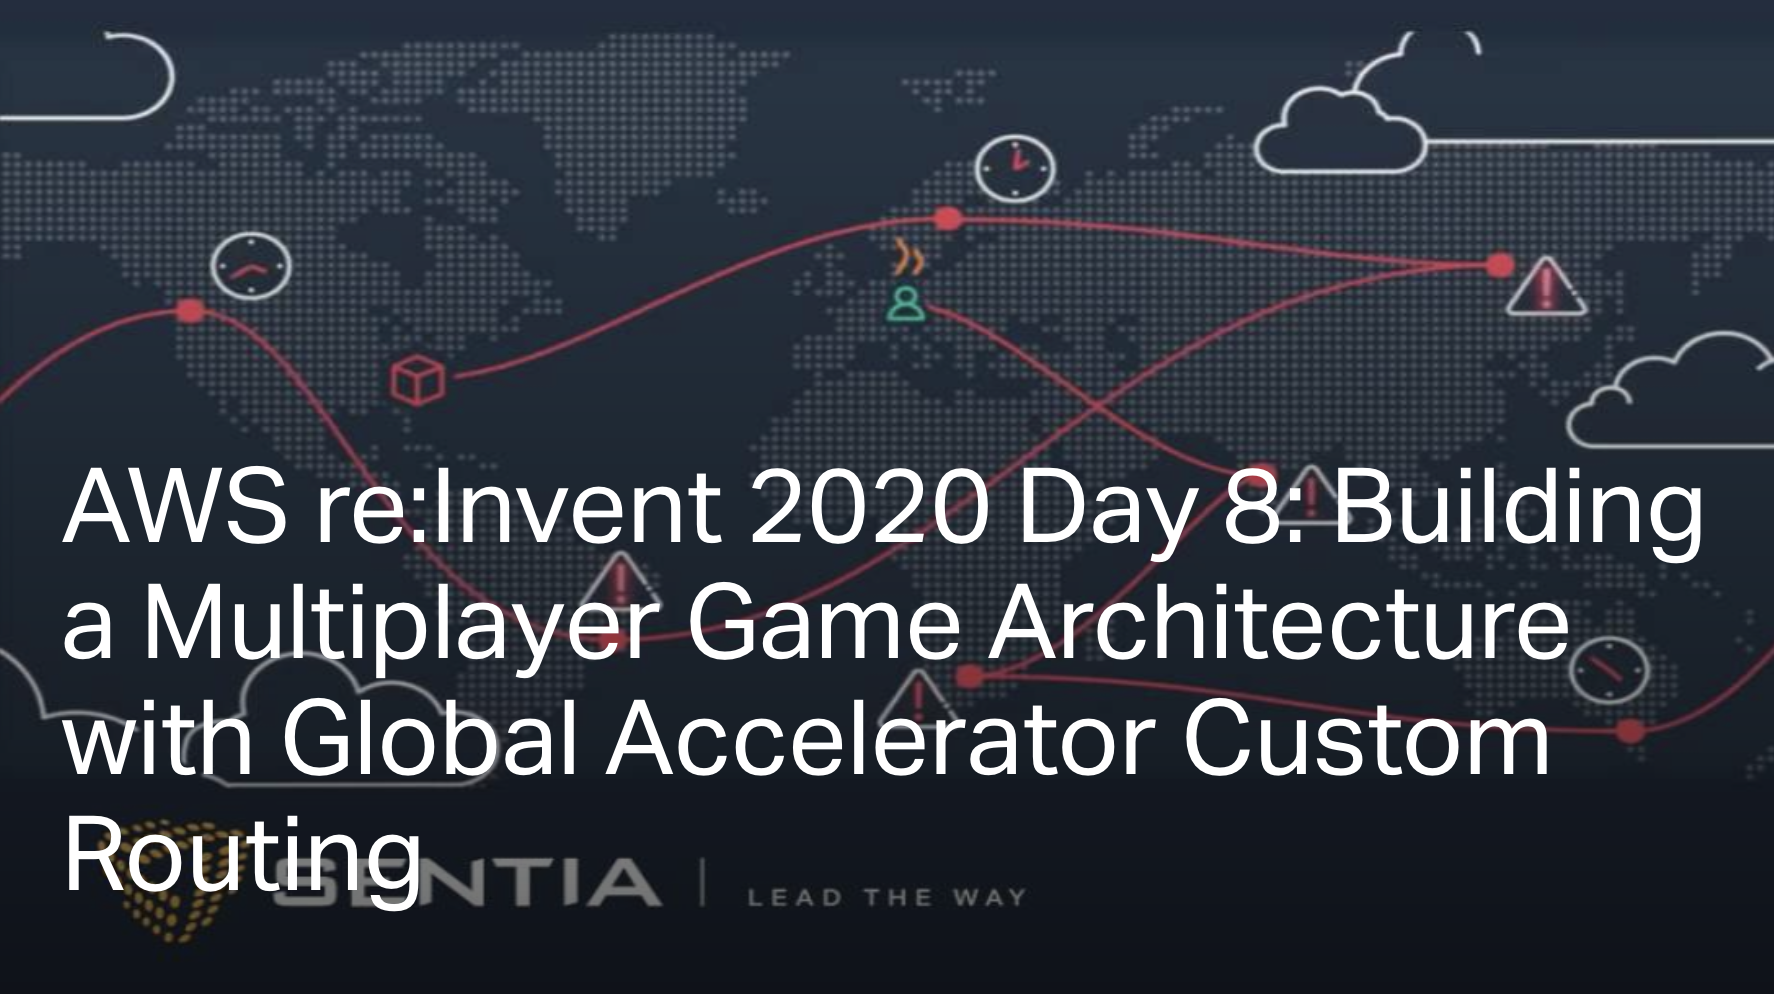 AWS re:Invent 2020 Day 8: Building a Multiplayer Game Architecture with Global Accelerator Custom Routing